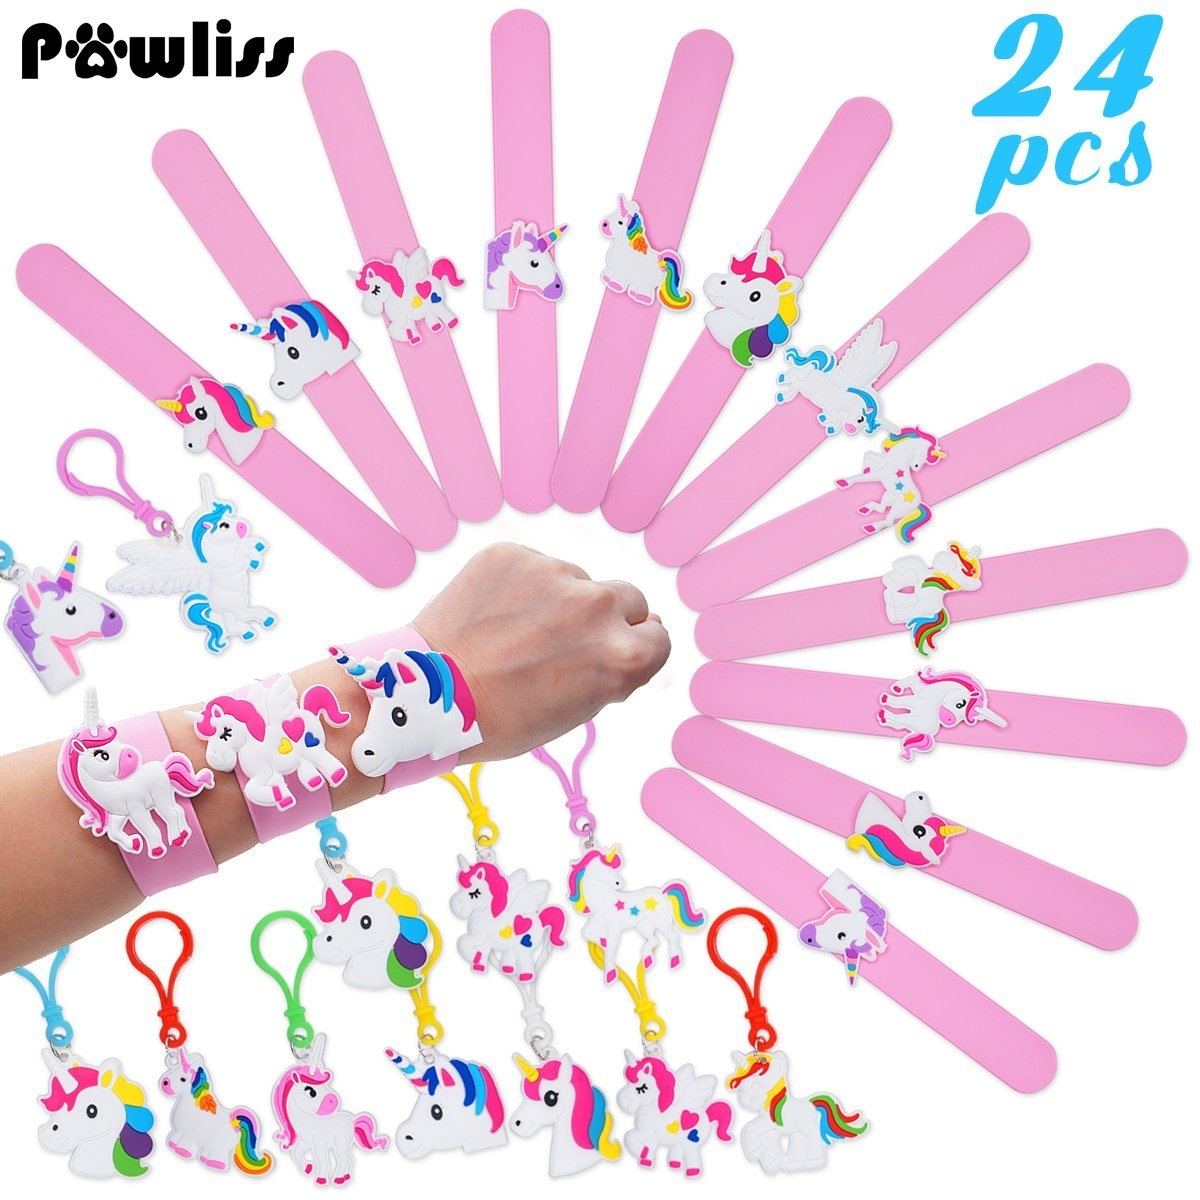 Pawliss 24 Pack Unicorn Slap Bracelets Wristband Backpack Clips Emoji Birthday Party Favours Supplies For Kids Girls Rubber Band Keychains Classroom Toys